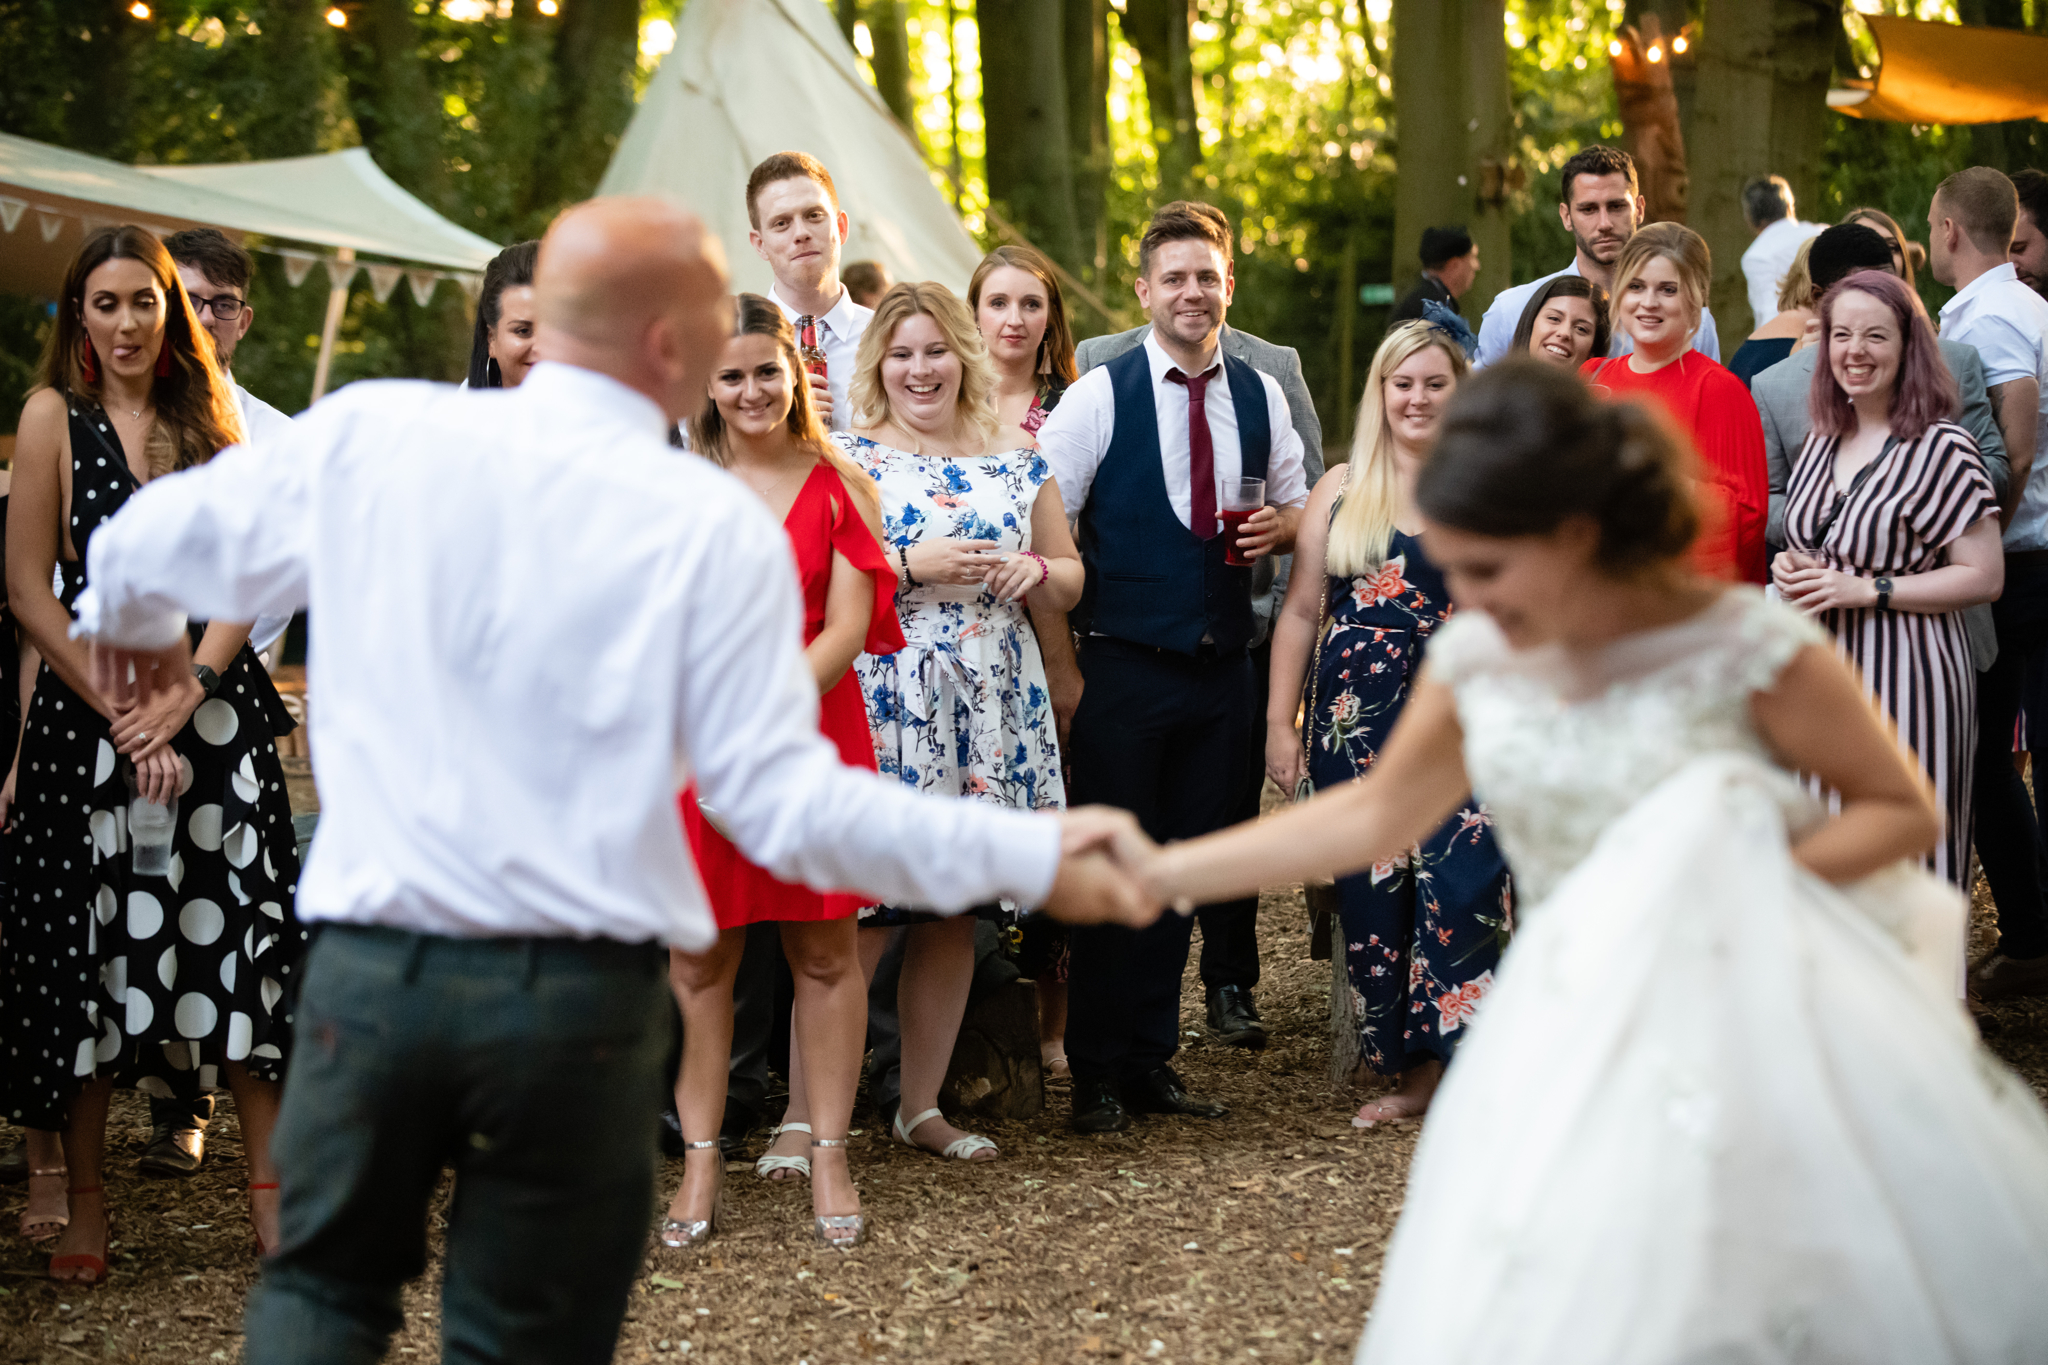 The bride and her father dance at Woodland Weddings